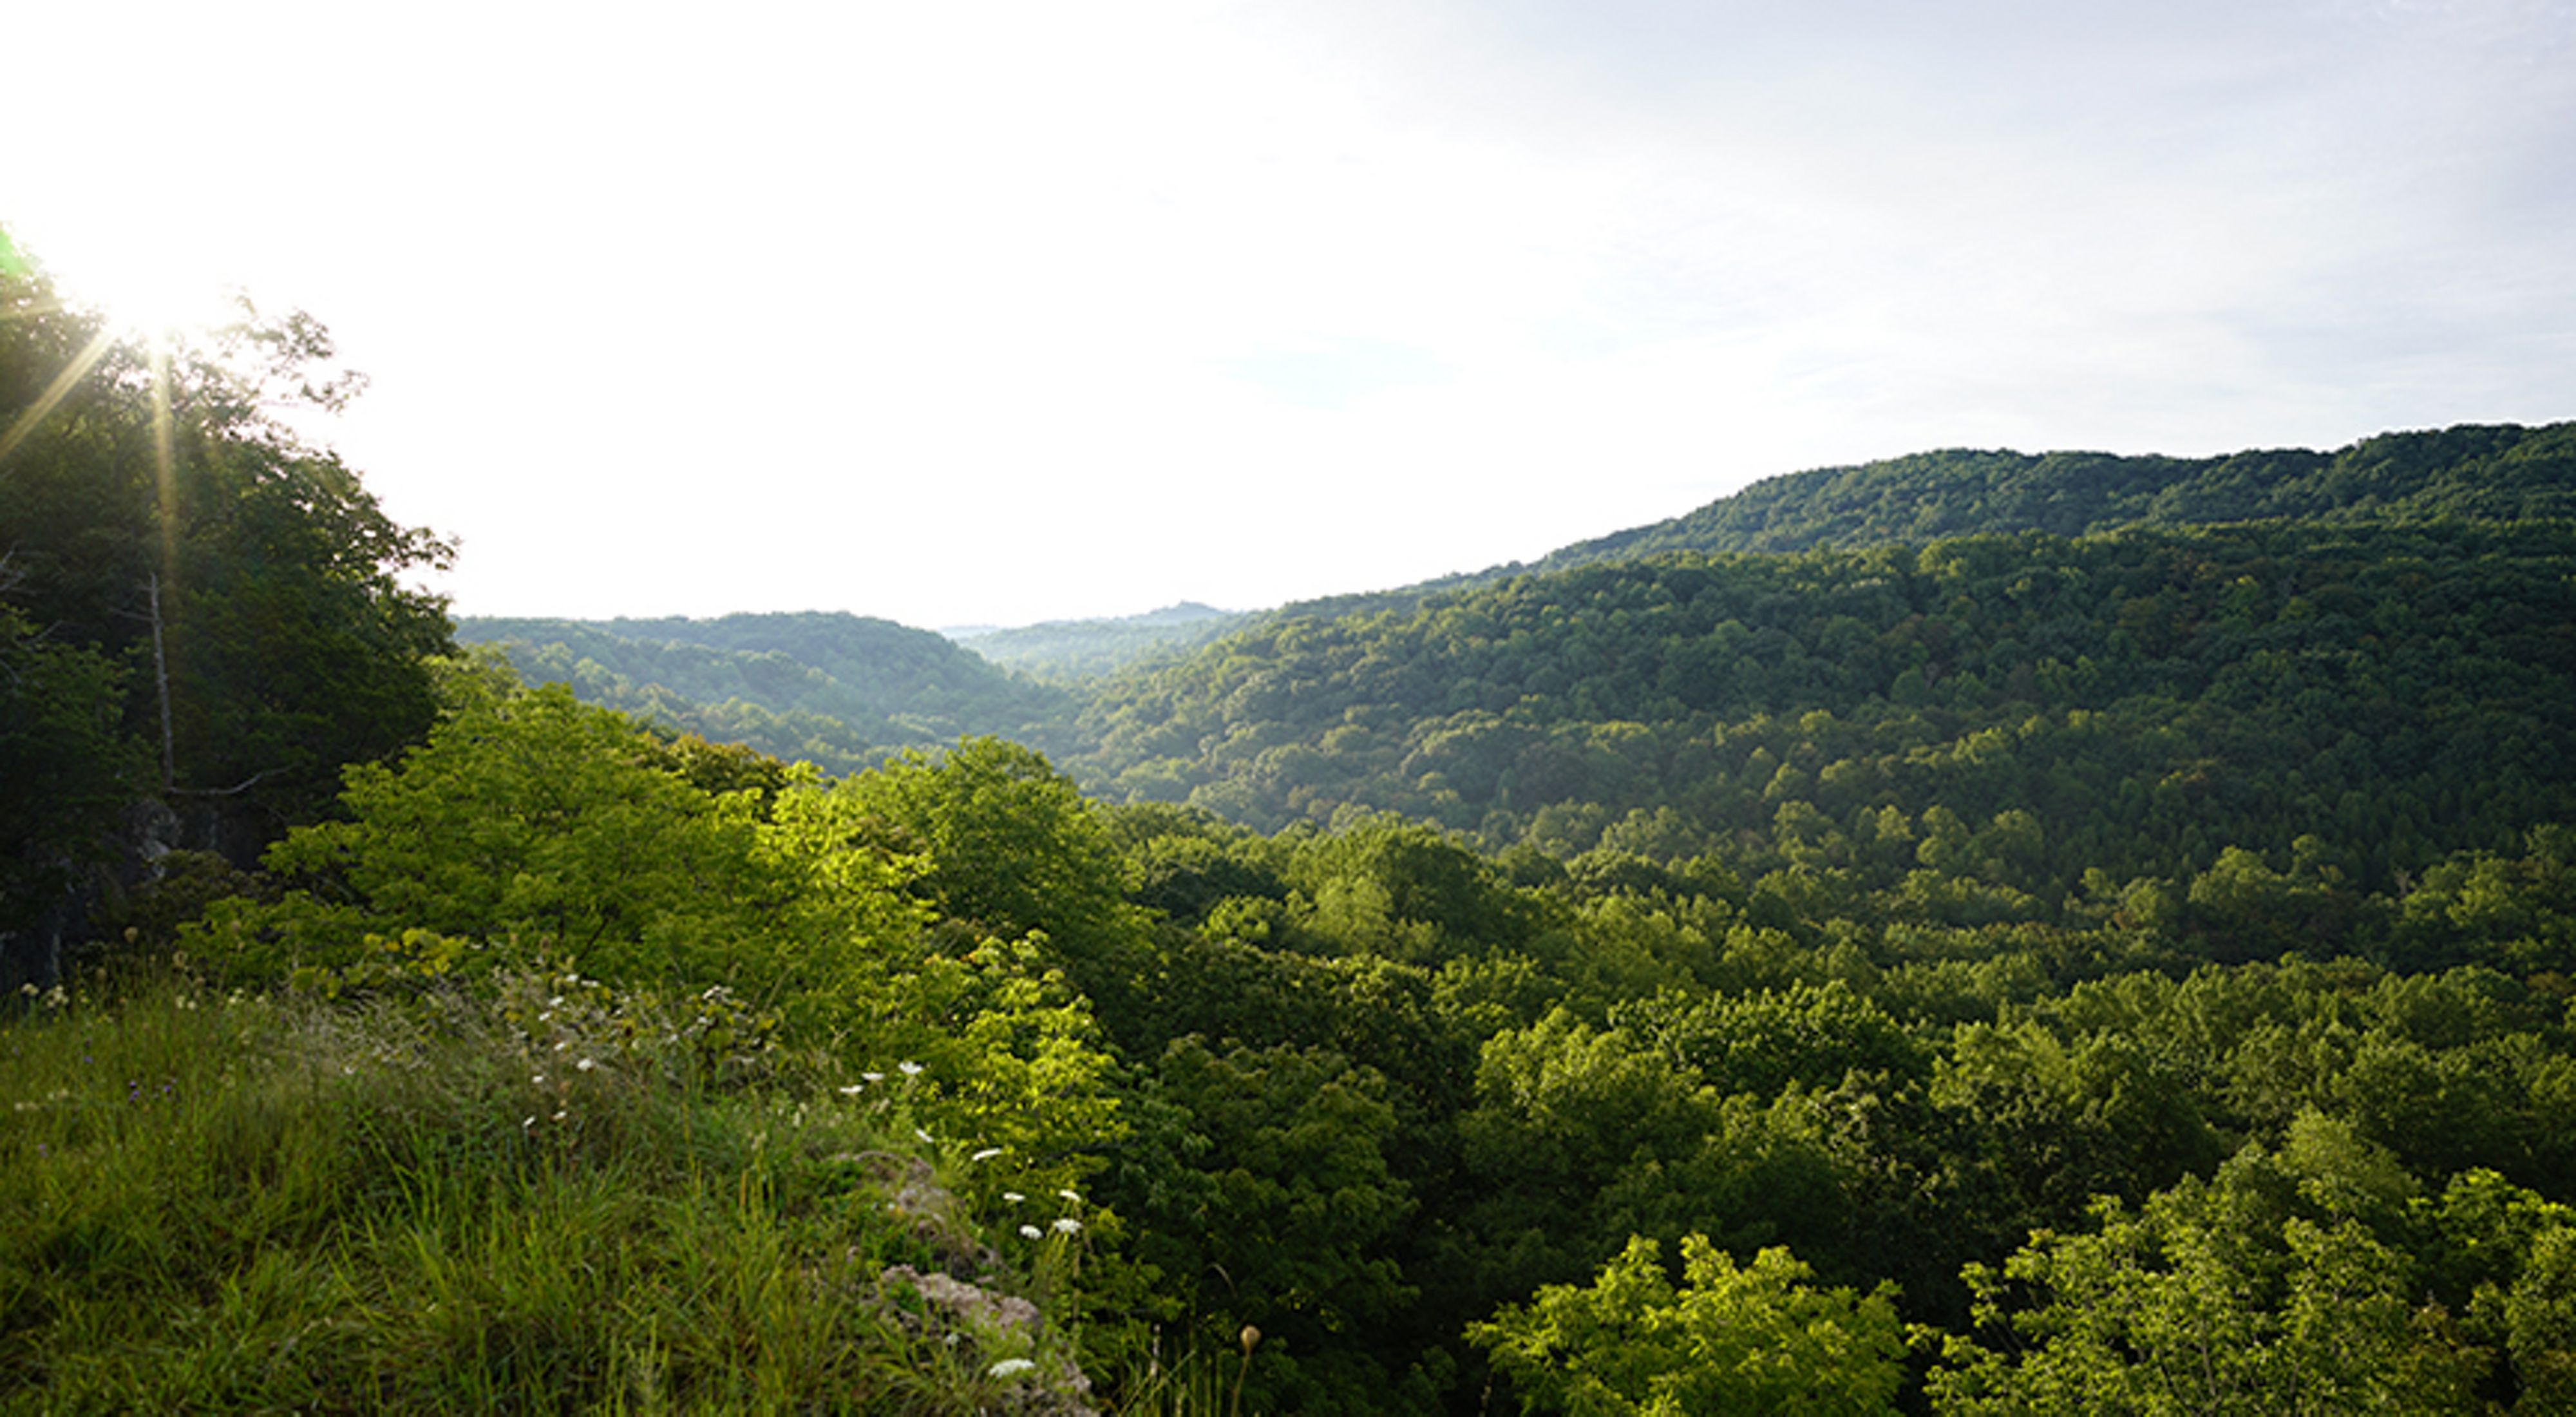 View from the Buzzardroost Rock Trail